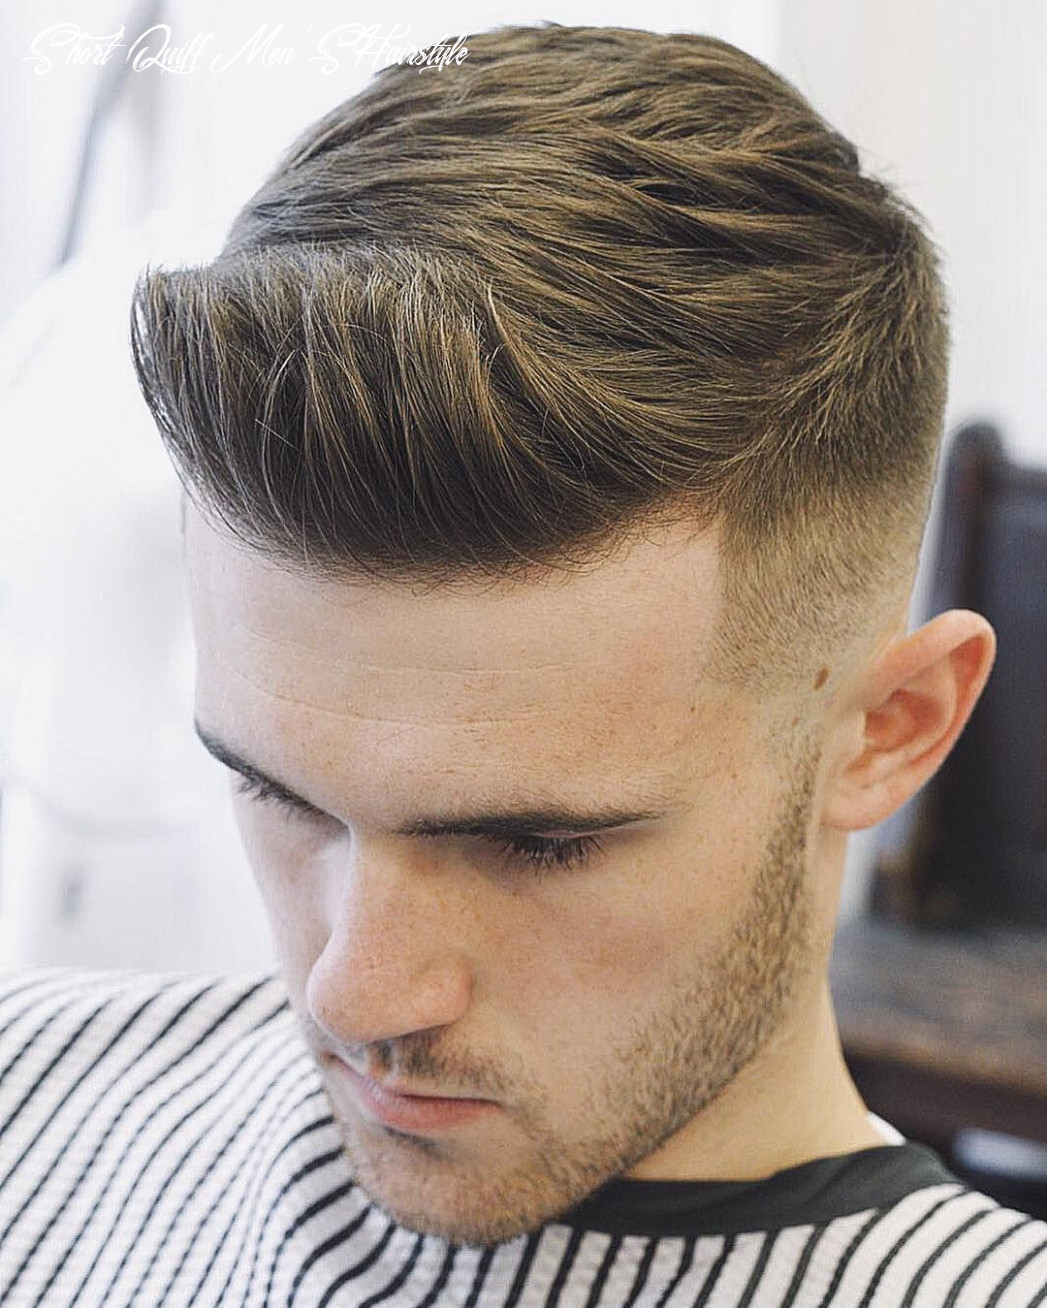 12 new hairstyles for men (12 update) | mens hairstyles short